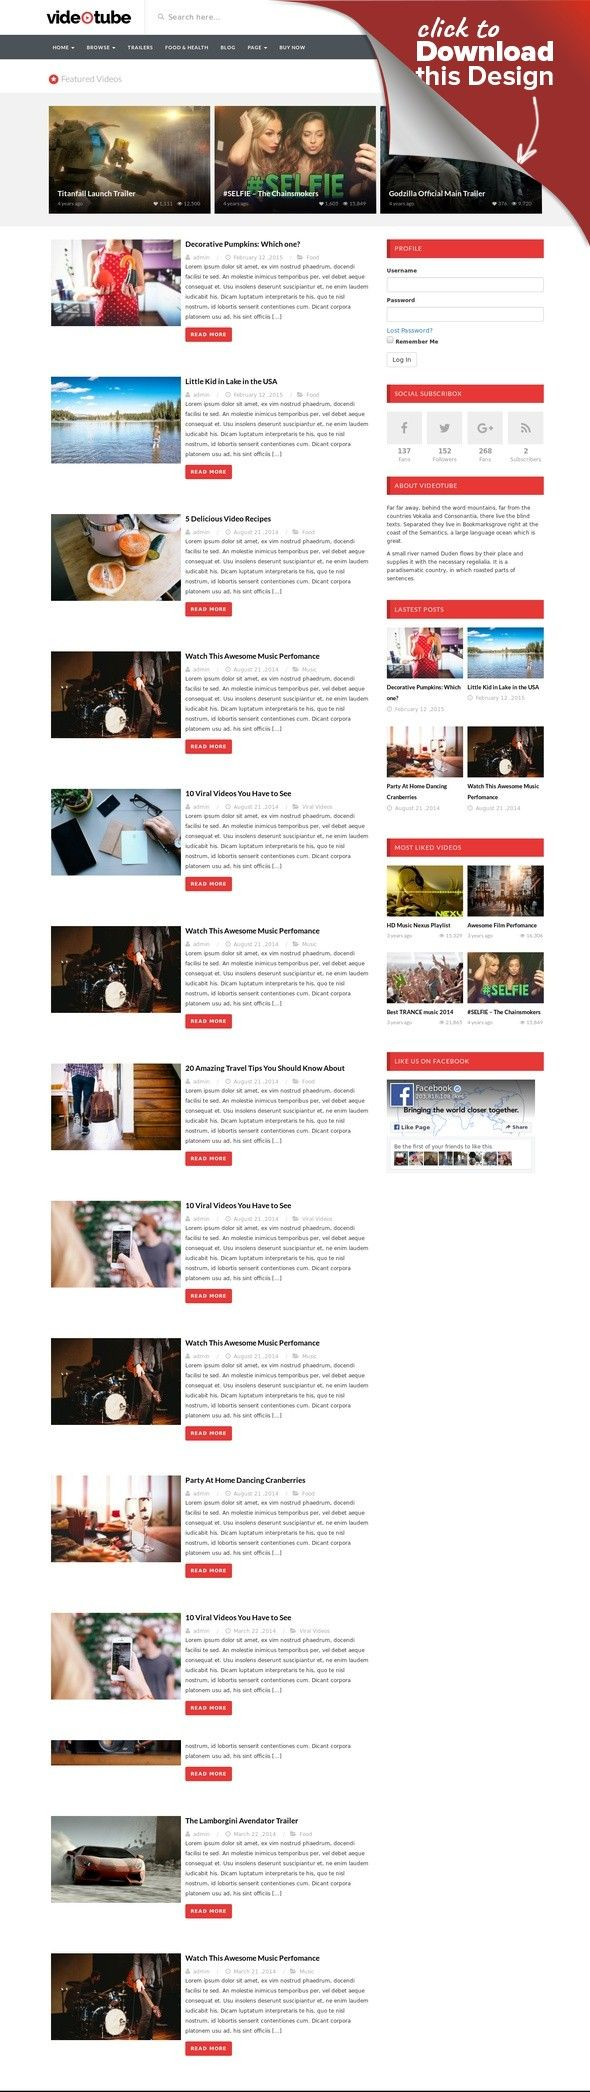 VideoTube - A Responsive Video WordPress Theme clip theme, Media Theme, page builder, theme video, tube, video, video blog, video clip, video magazine, video news, video portal, video theme, videotube, vimeo, youtube VideoTube – version 3.0.6 is out now. [New] How to import videos from Youtube/Vimeo? Have you ever wanted to collect and share your favorite videos online? Interested in uploading your own work to broadcast across the web? Videotub...